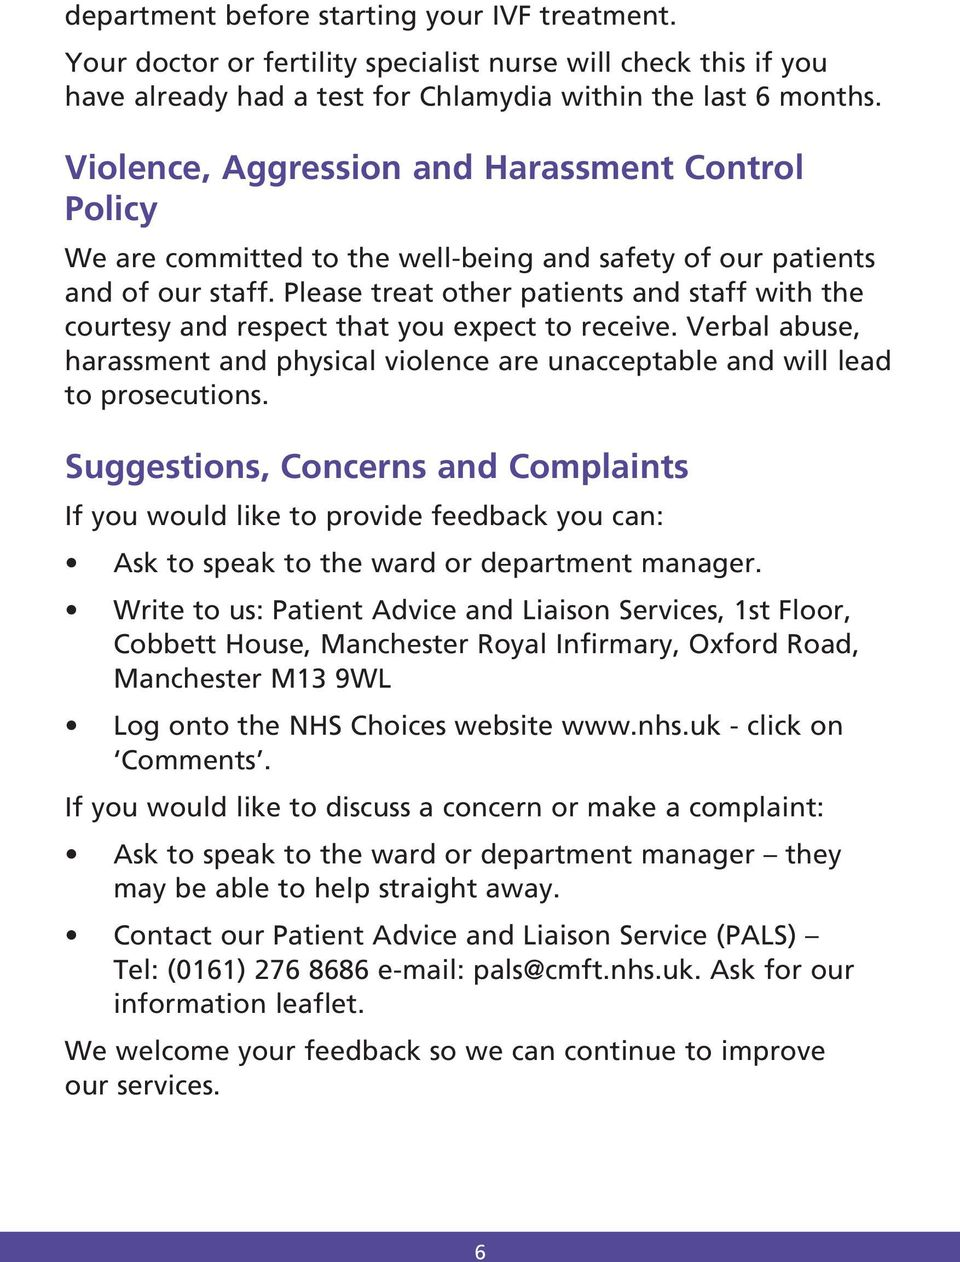 Please treat other patients and staff with the courtesy and respect that you expect to receive. Verbal abuse, harassment and physical violence are unacceptable and will lead to prosecutions.